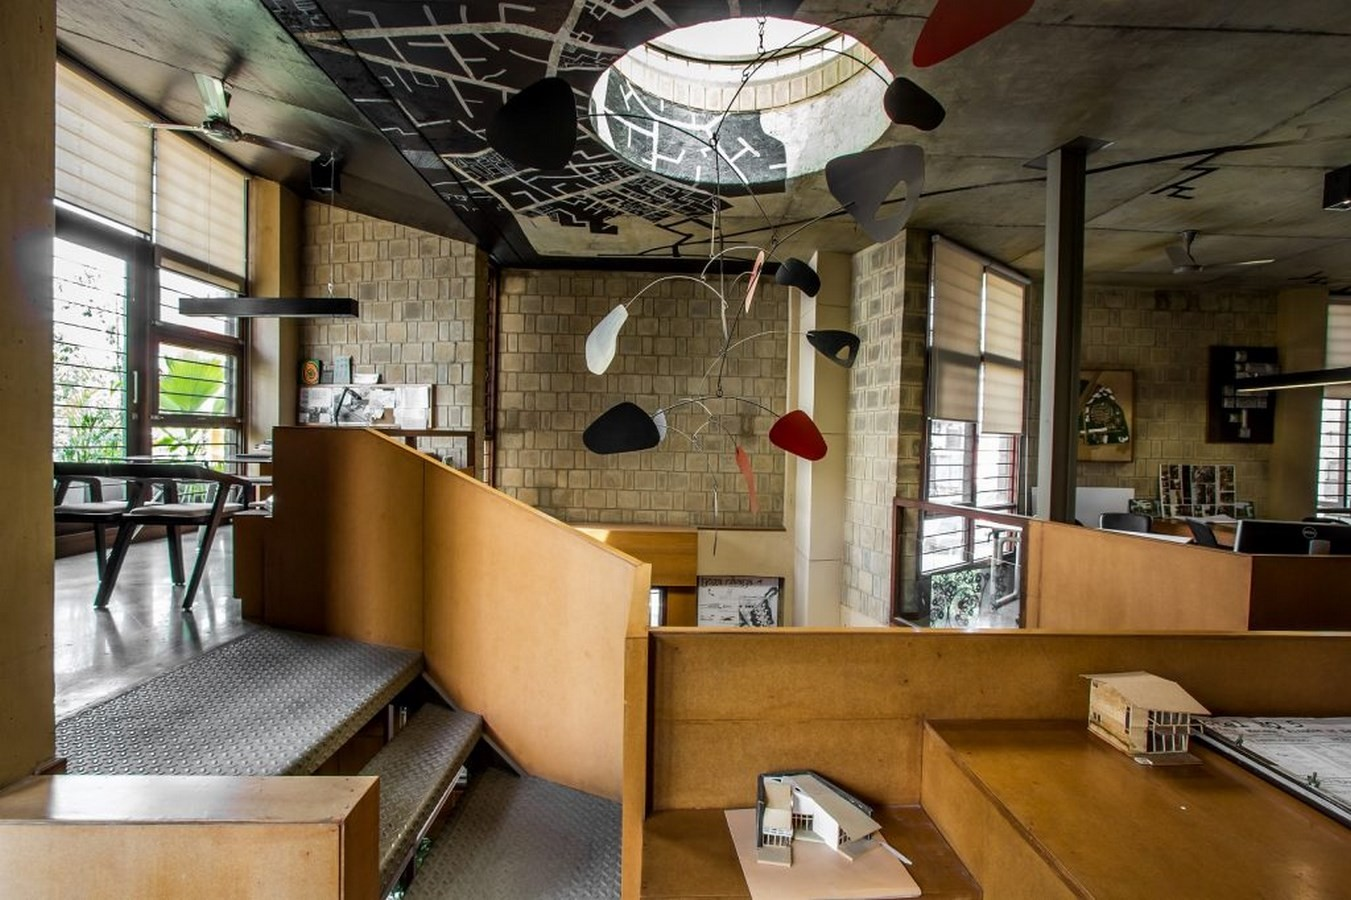 PLACE MAYAPRAXIS – Architects studio and home - Sheet2